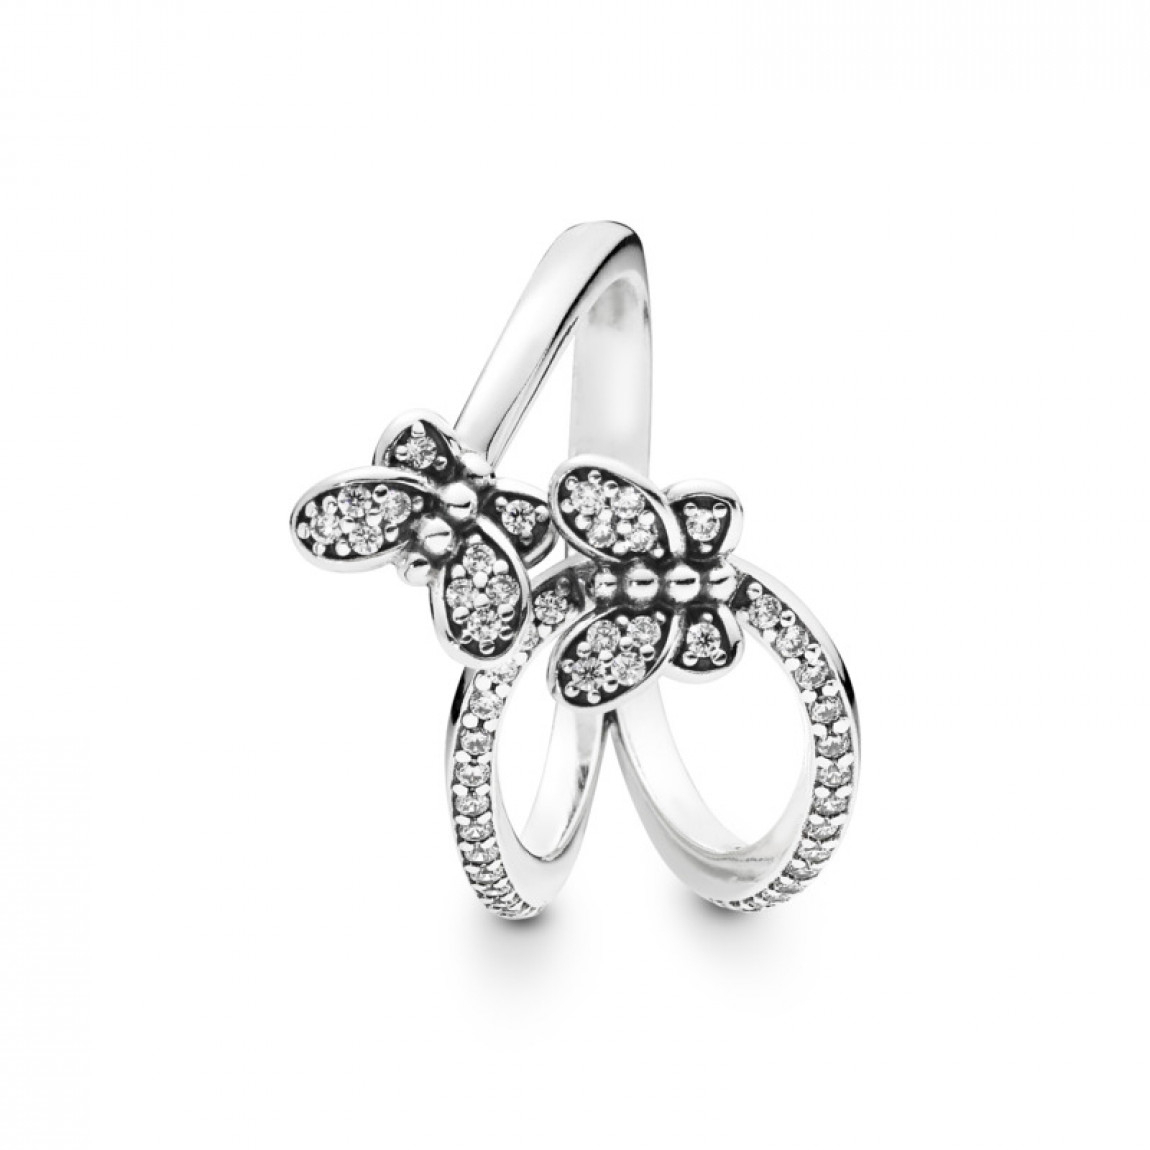 Pandora Bedazzling Butterflies Ring, Clear Cz Throughout Most Recent Sparkling Butterfly Open Rings (Gallery 2 of 25)